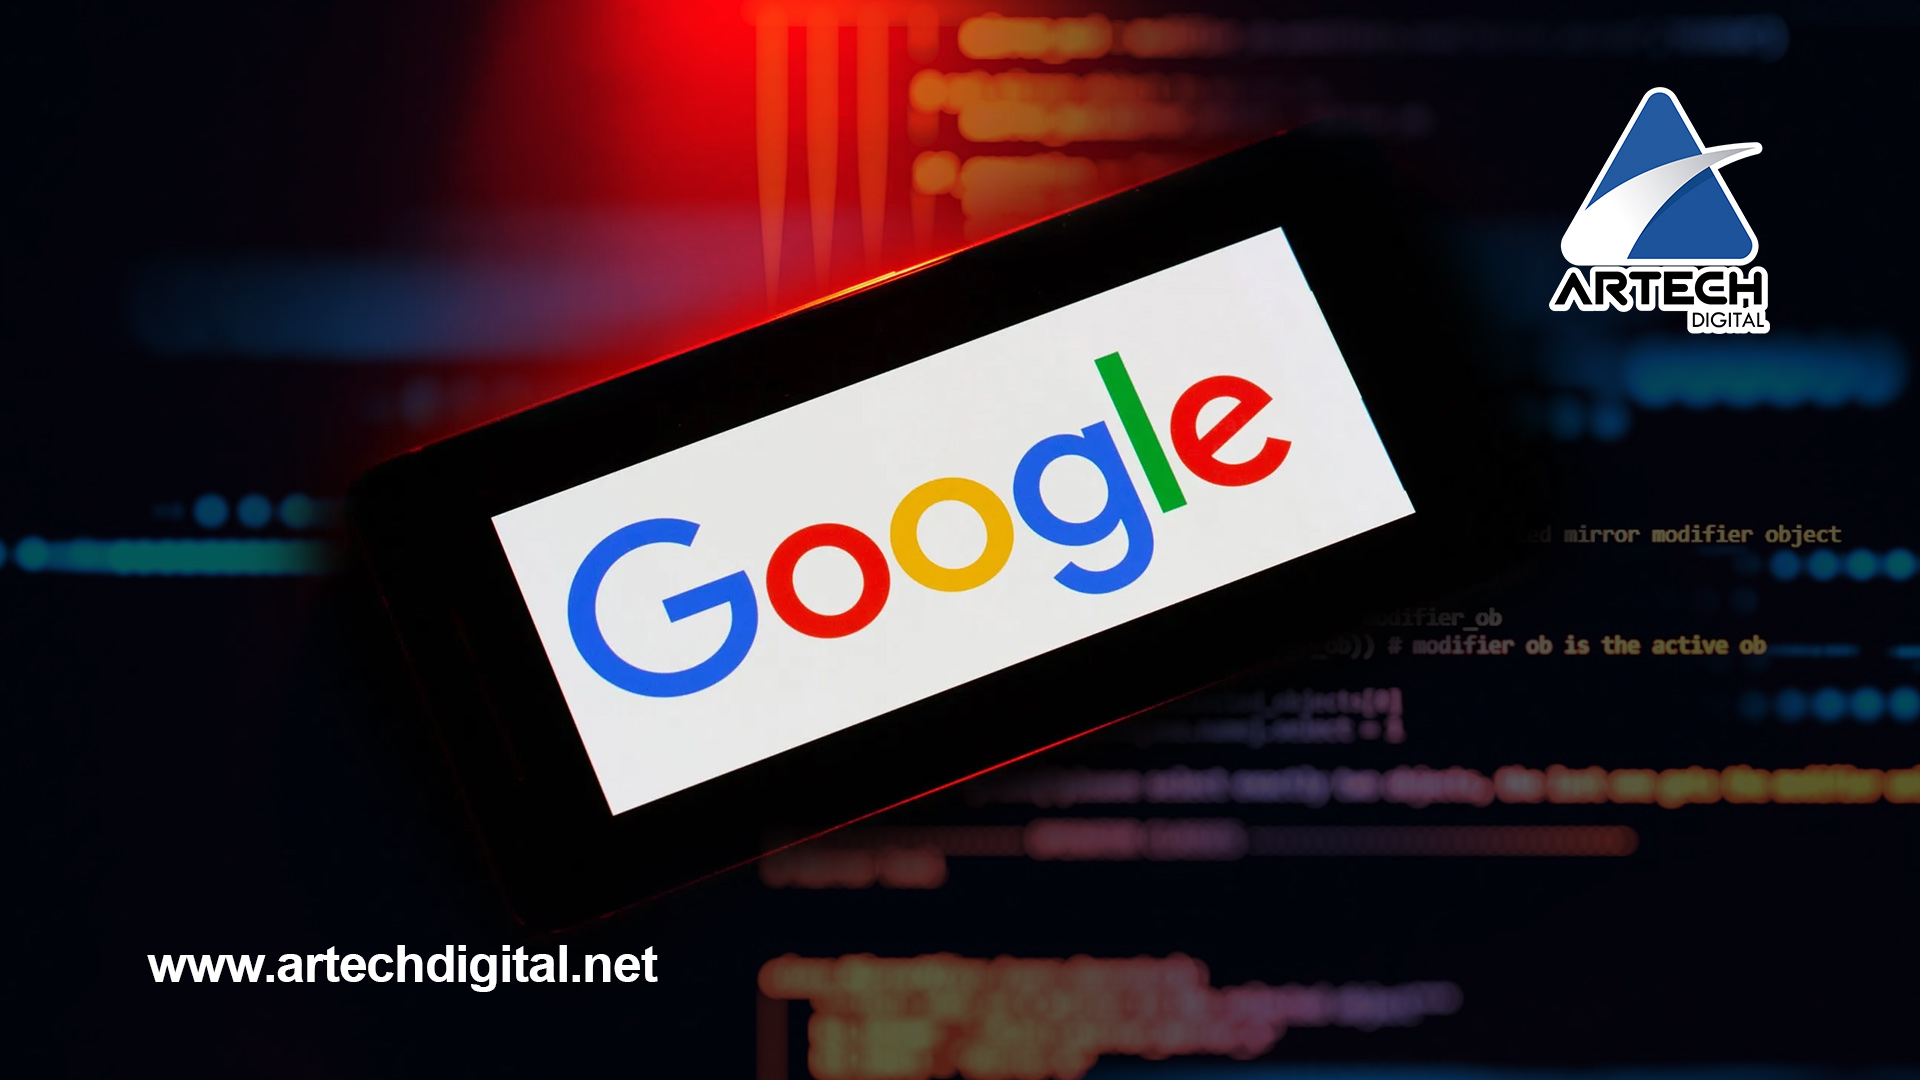 Google DeepRank - Artech Digital